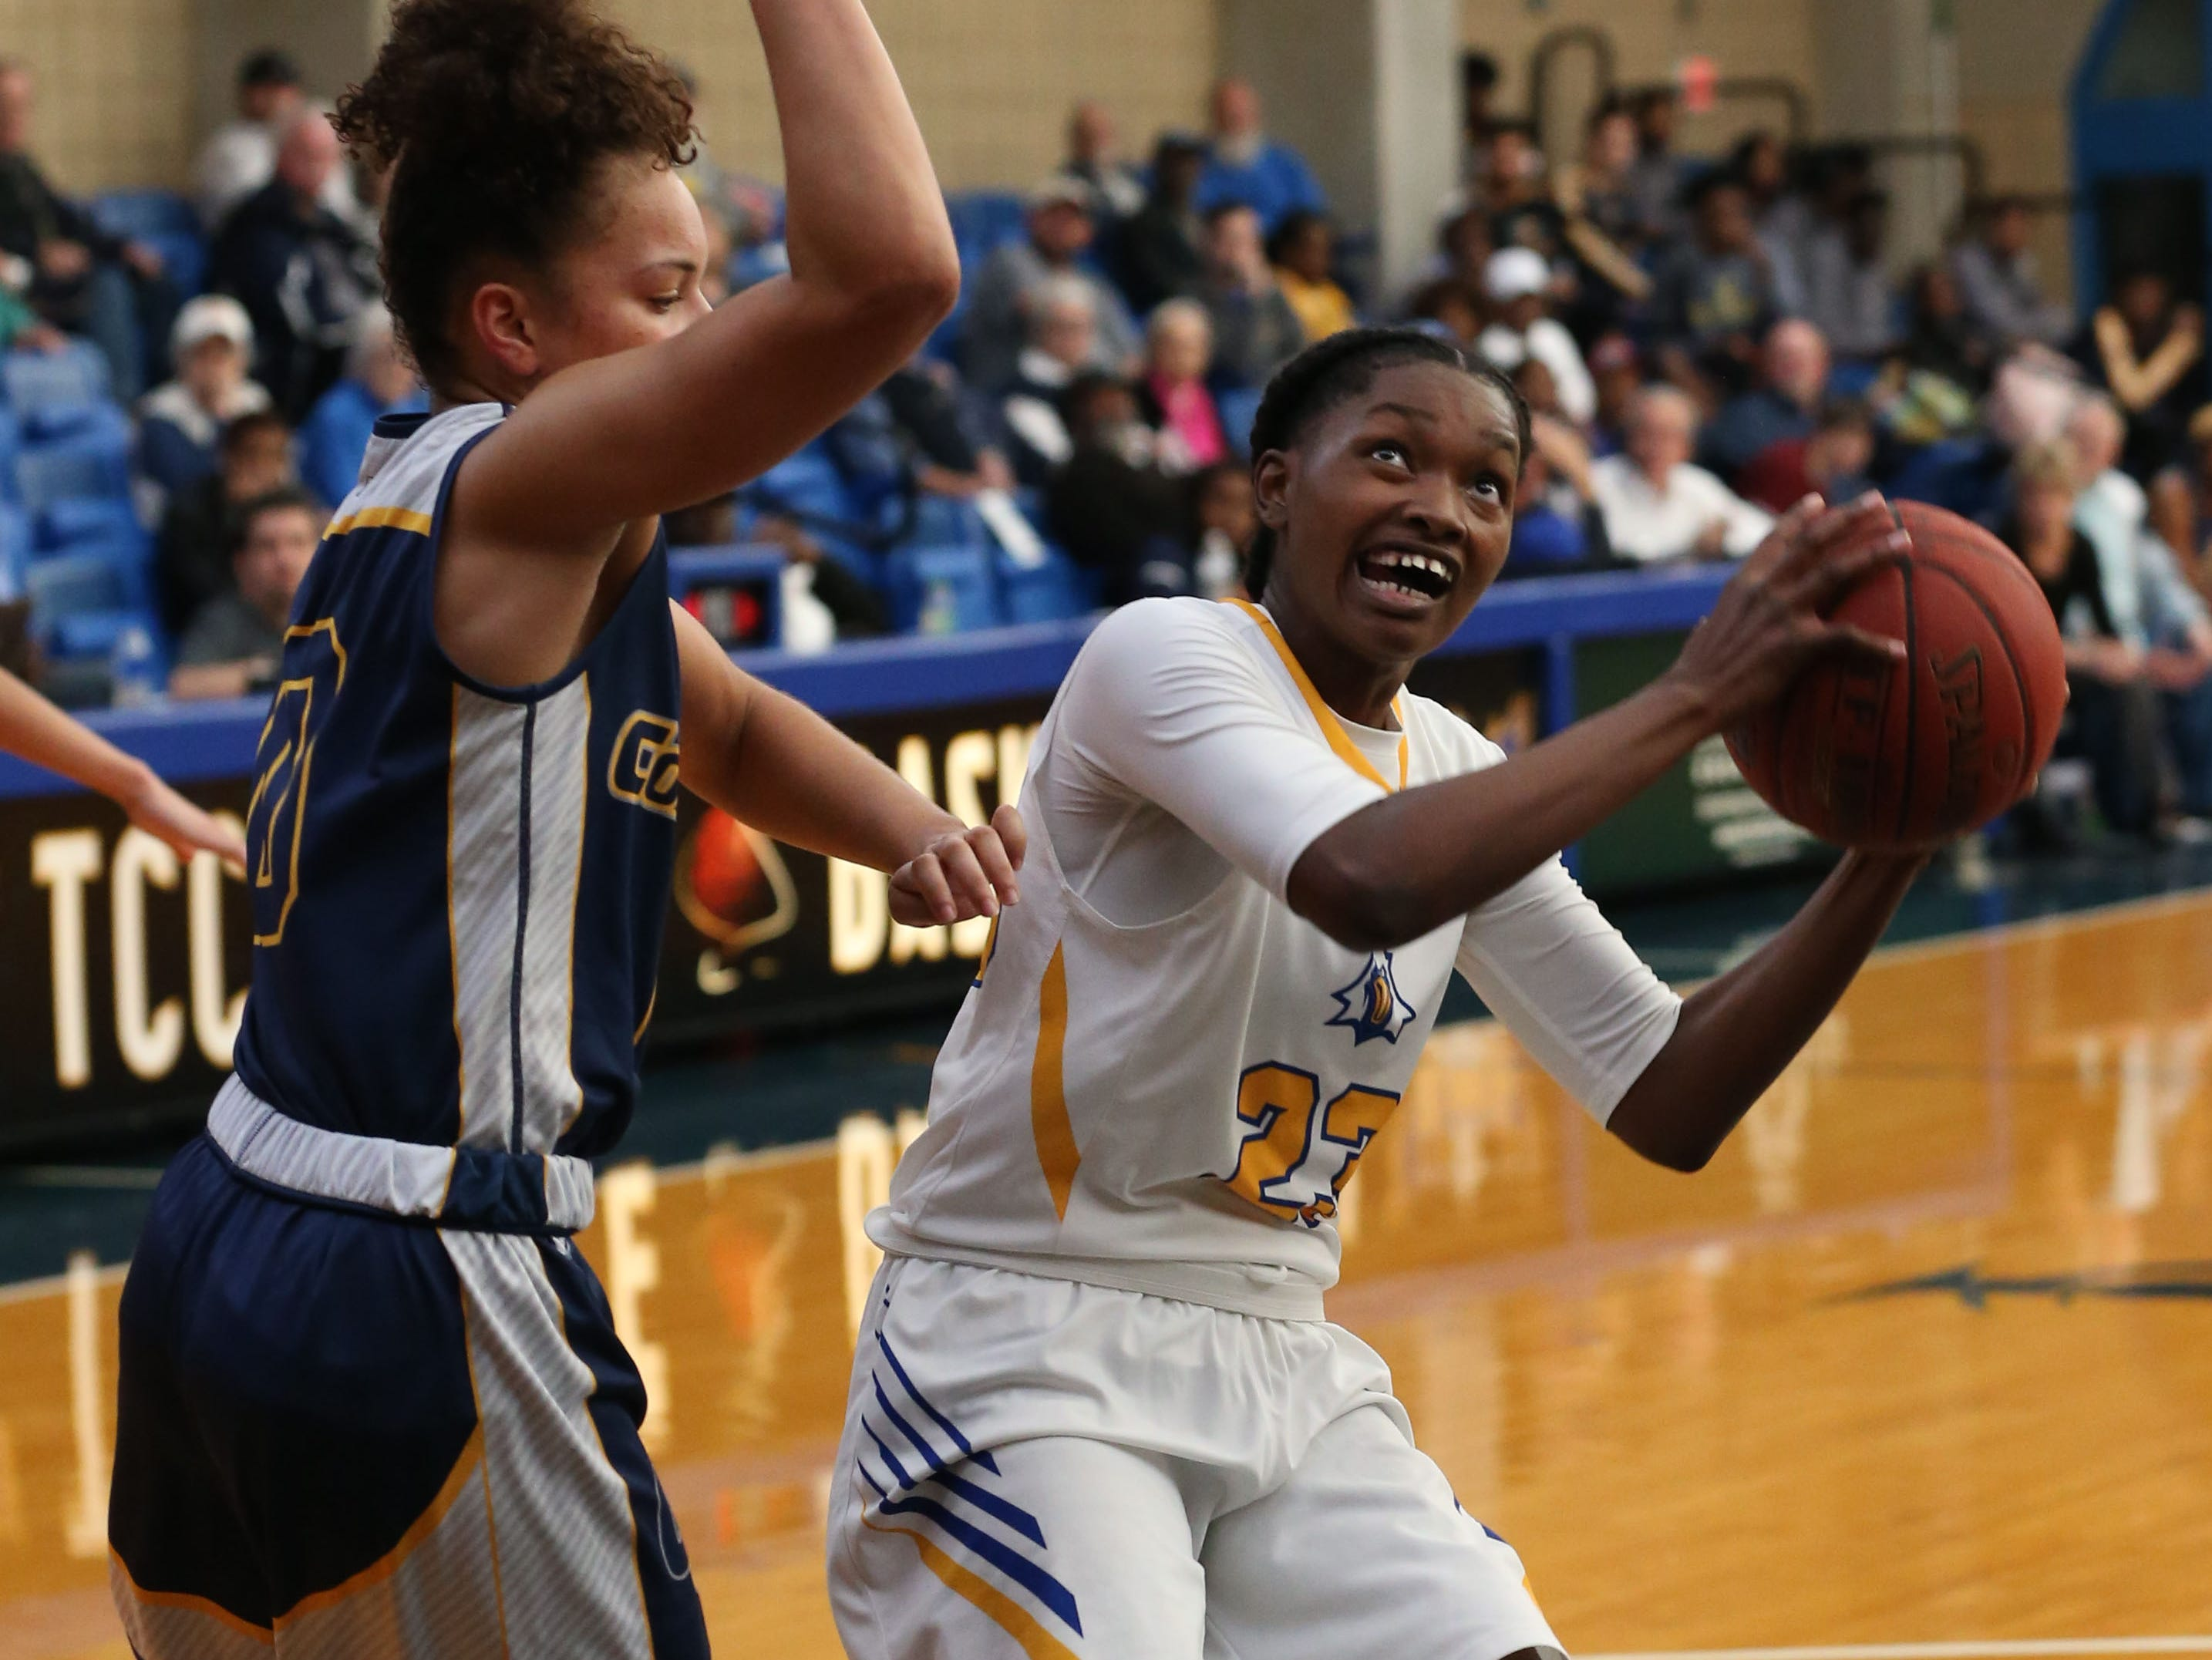 Tallahassee Community College Eagles guard Juliunn Redmond (23) looks to shoot from inside the paint. The Tallahassee Community College Eagles host the Gulf Coast State College Commodores in a conference match-up in the Eagledome, Saturday, Jan. 5, 2019.